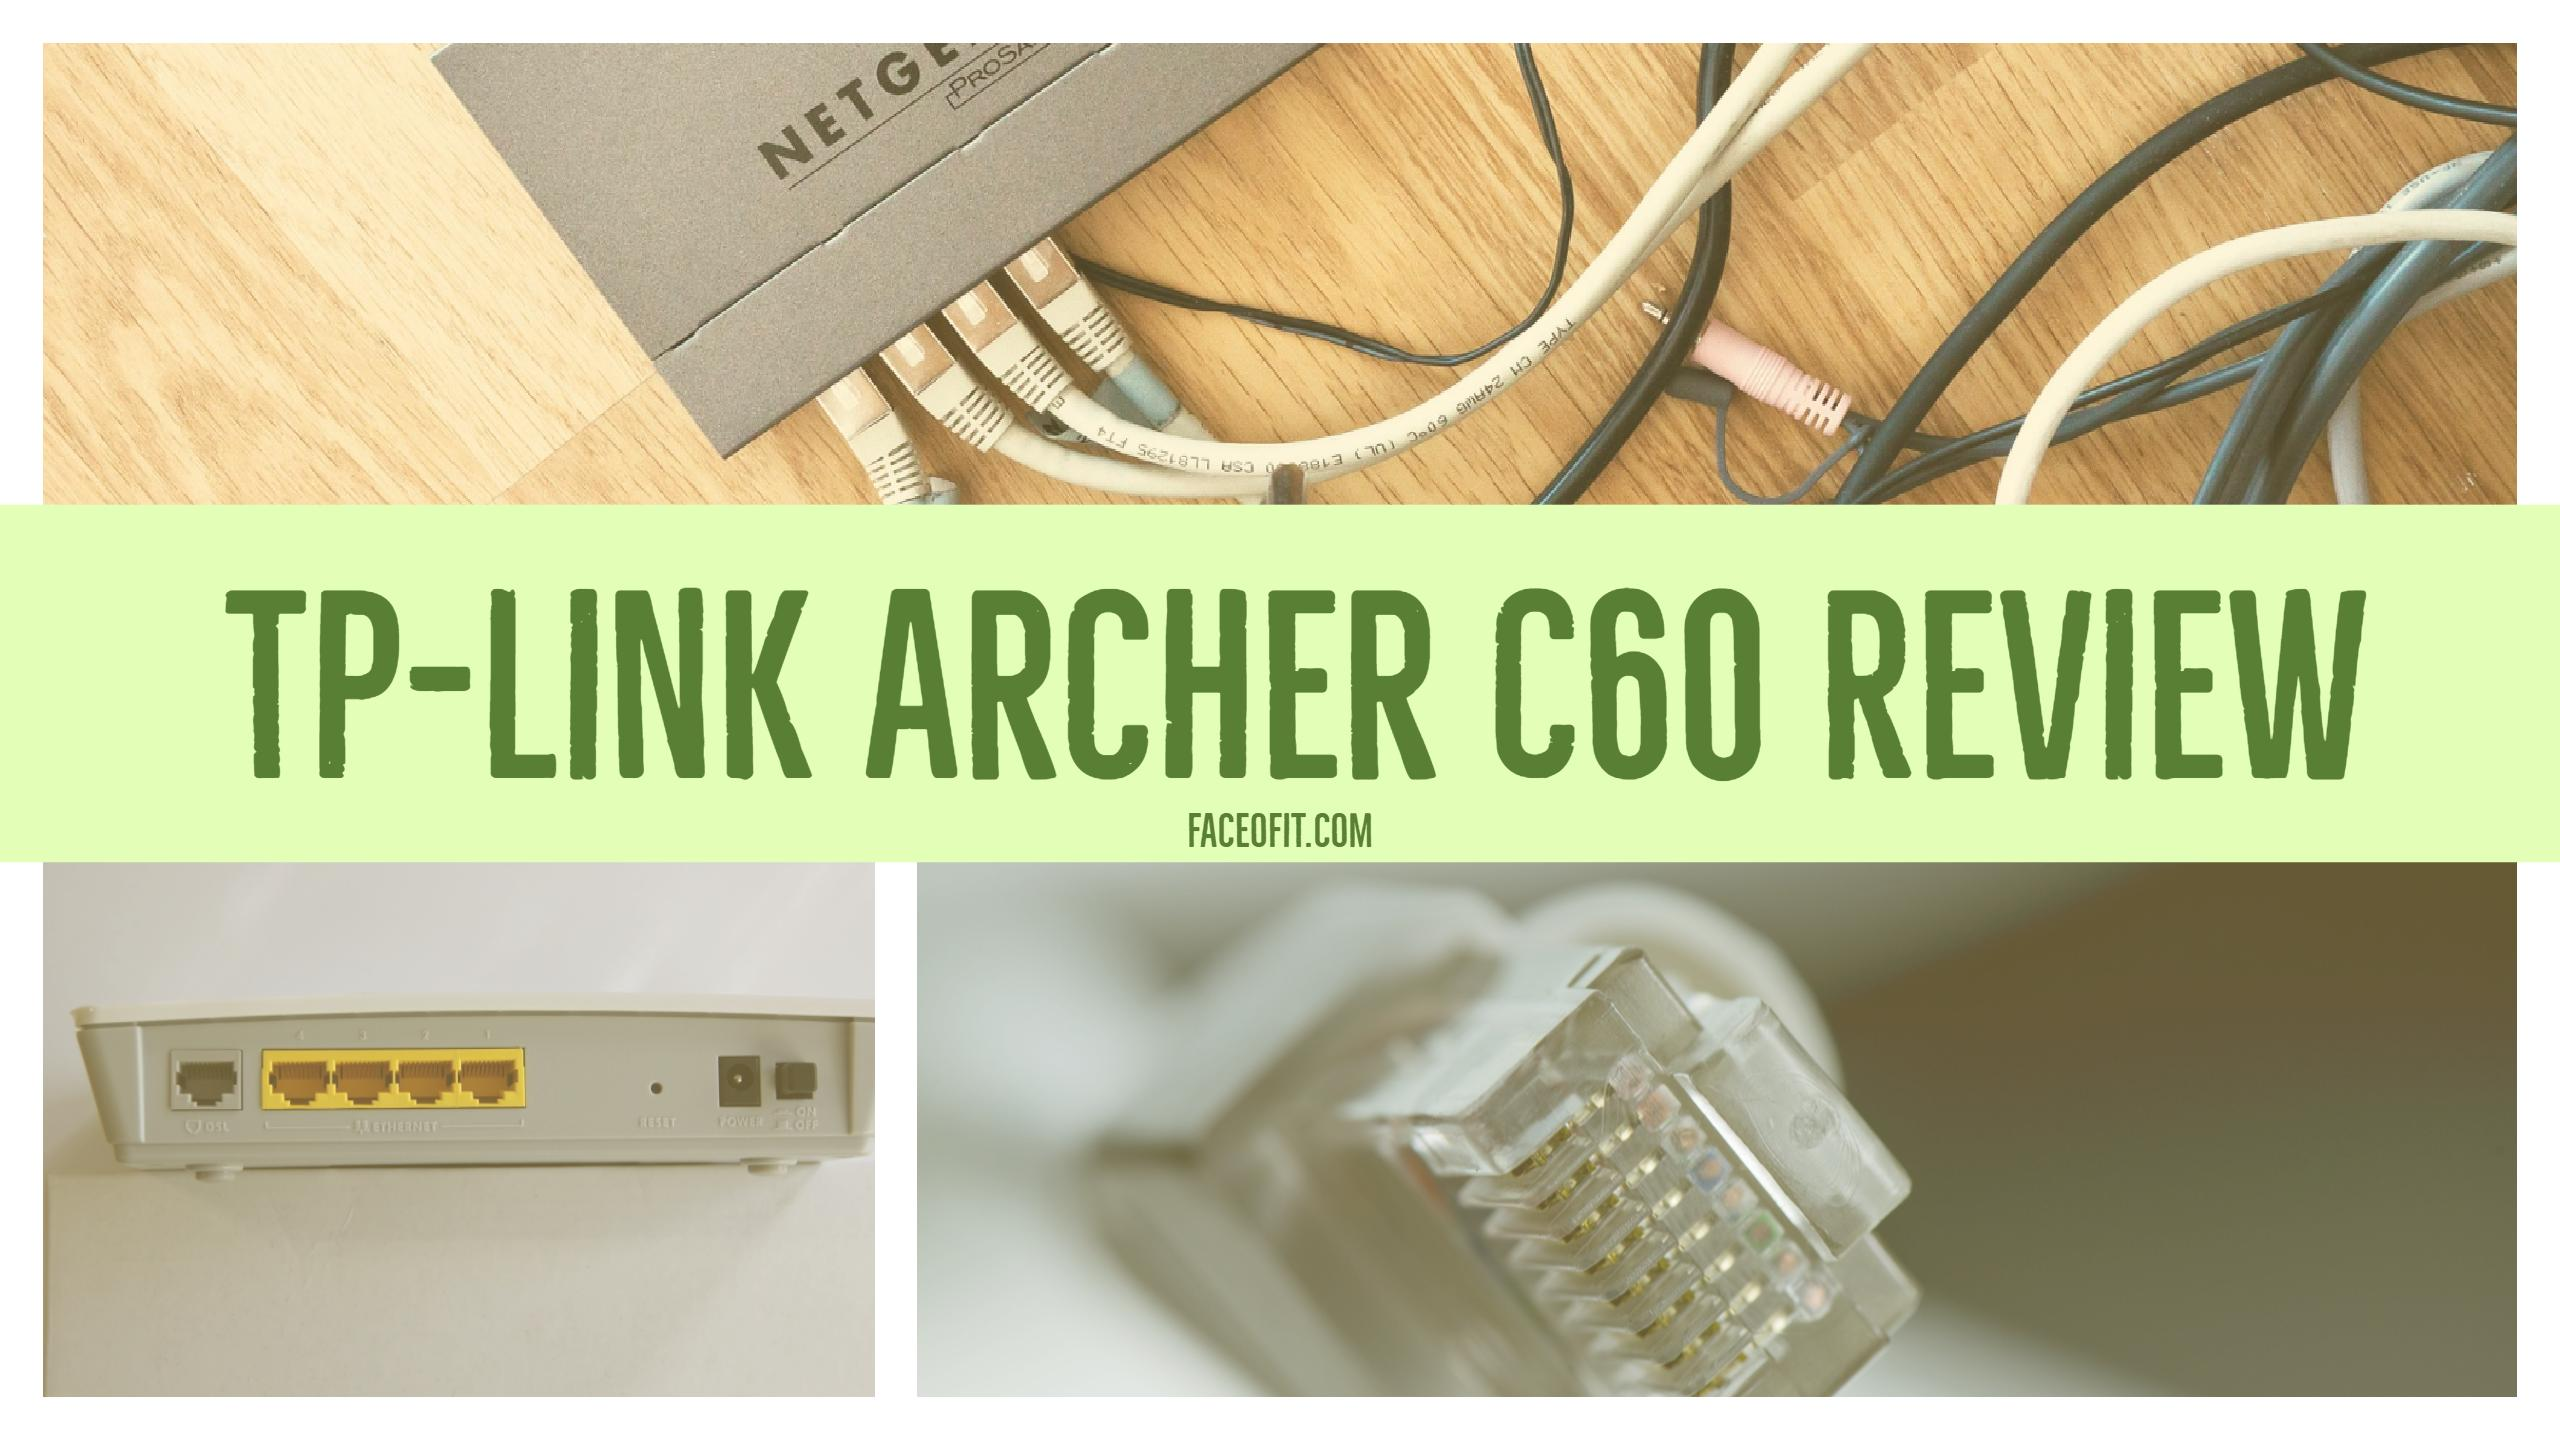 Dual Band TP-Link Archer C60 WiFi Router Review Specifications & Setup